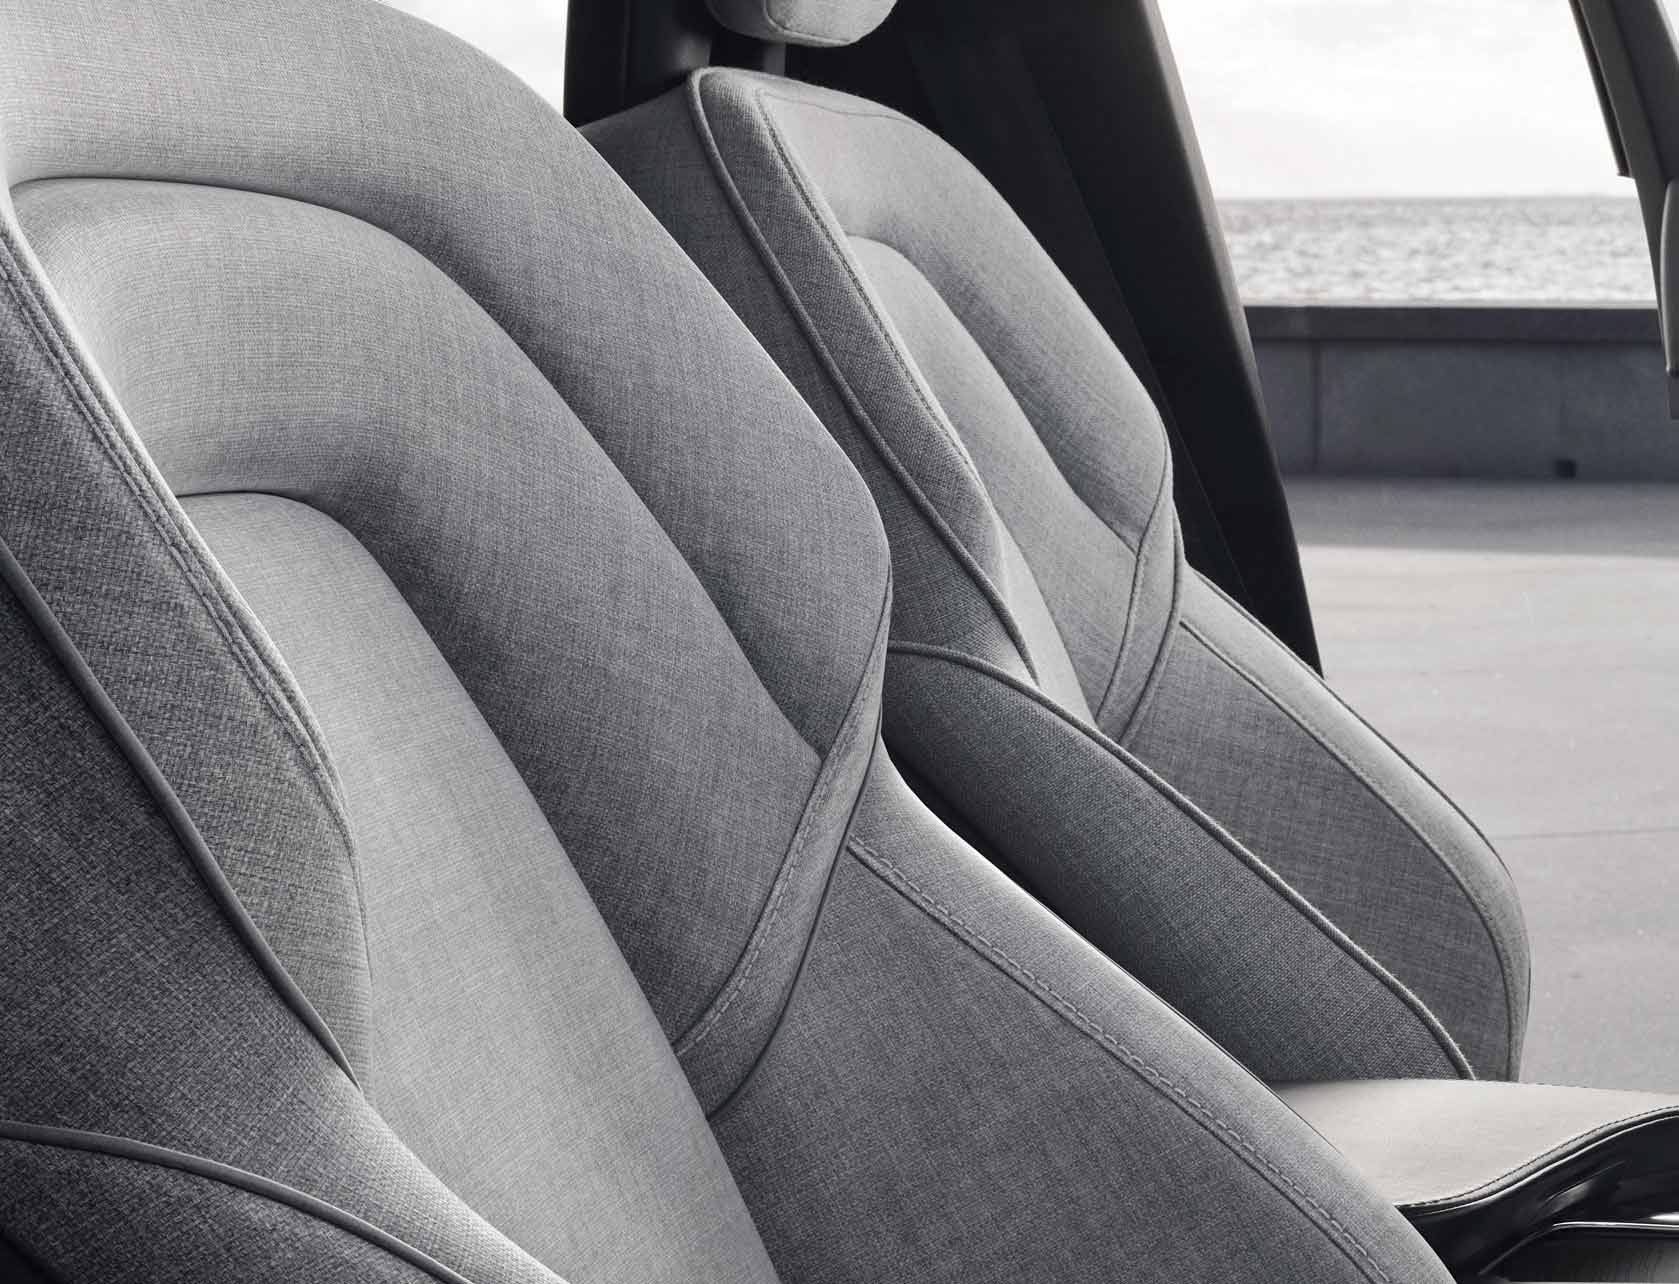 Volvo's new wool seats